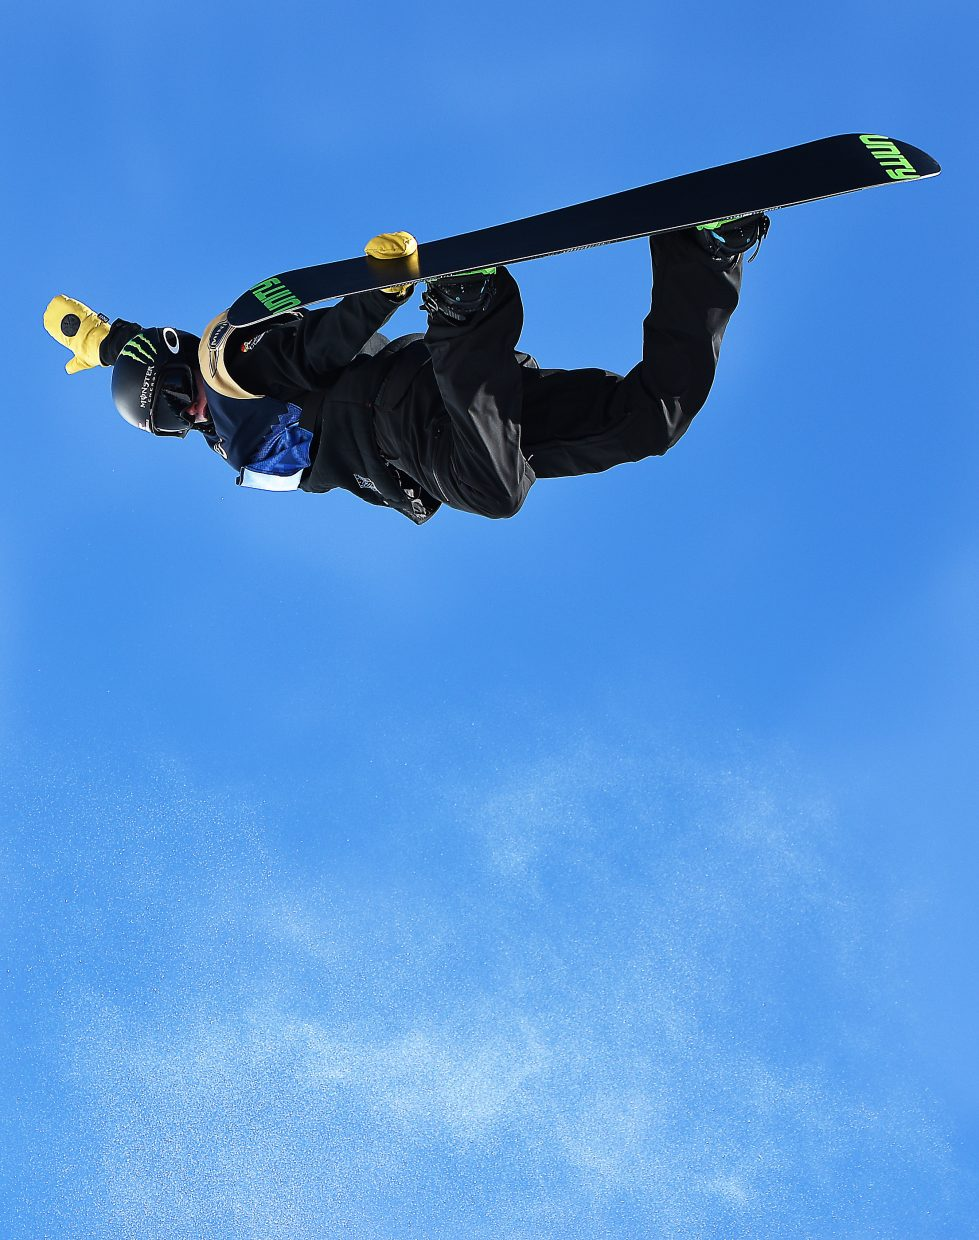 Taylor Gold flies high with a method grab to start his first run Saturday at the U.S. Open men's snowboard half-pipe championships. He was perfect on the run up until the last hit, when he hit the top of the pipe and was launched to the bottom of it. He went on to finish eighth.